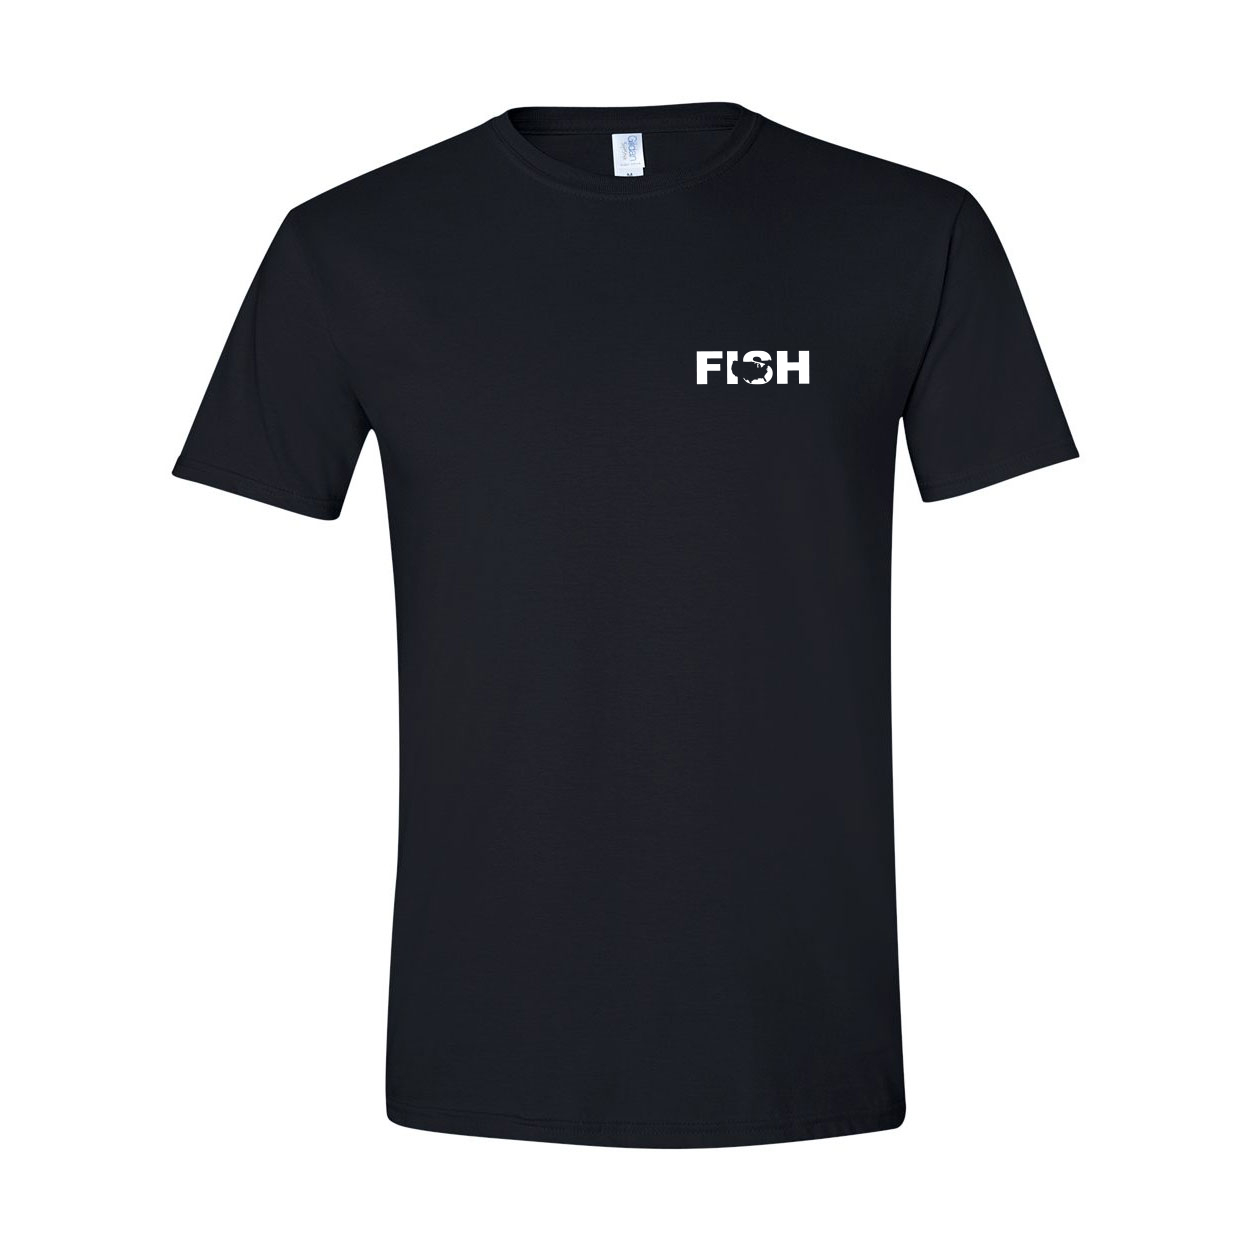 Fish United States Night Out T-Shirt Black (White Logo)